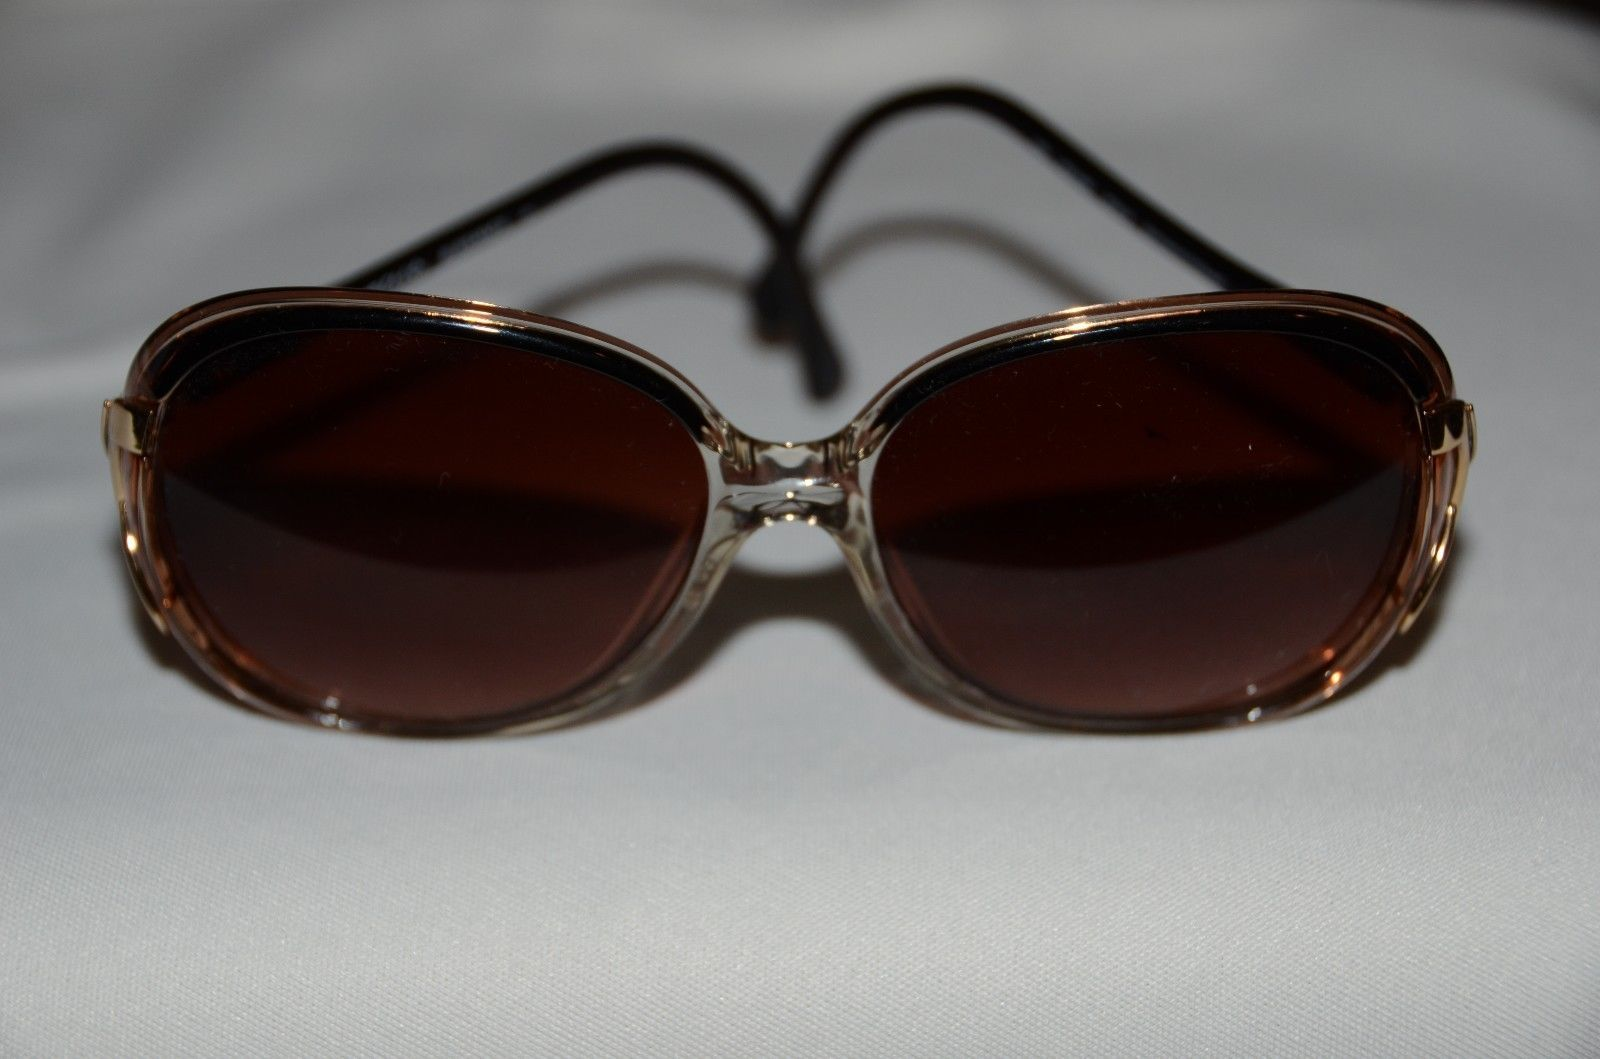 36fb26fb895 LUXOTTICA Elegance Women s Brown Cognac SUGLASSES ready2wear made in ITALY  -  7.19